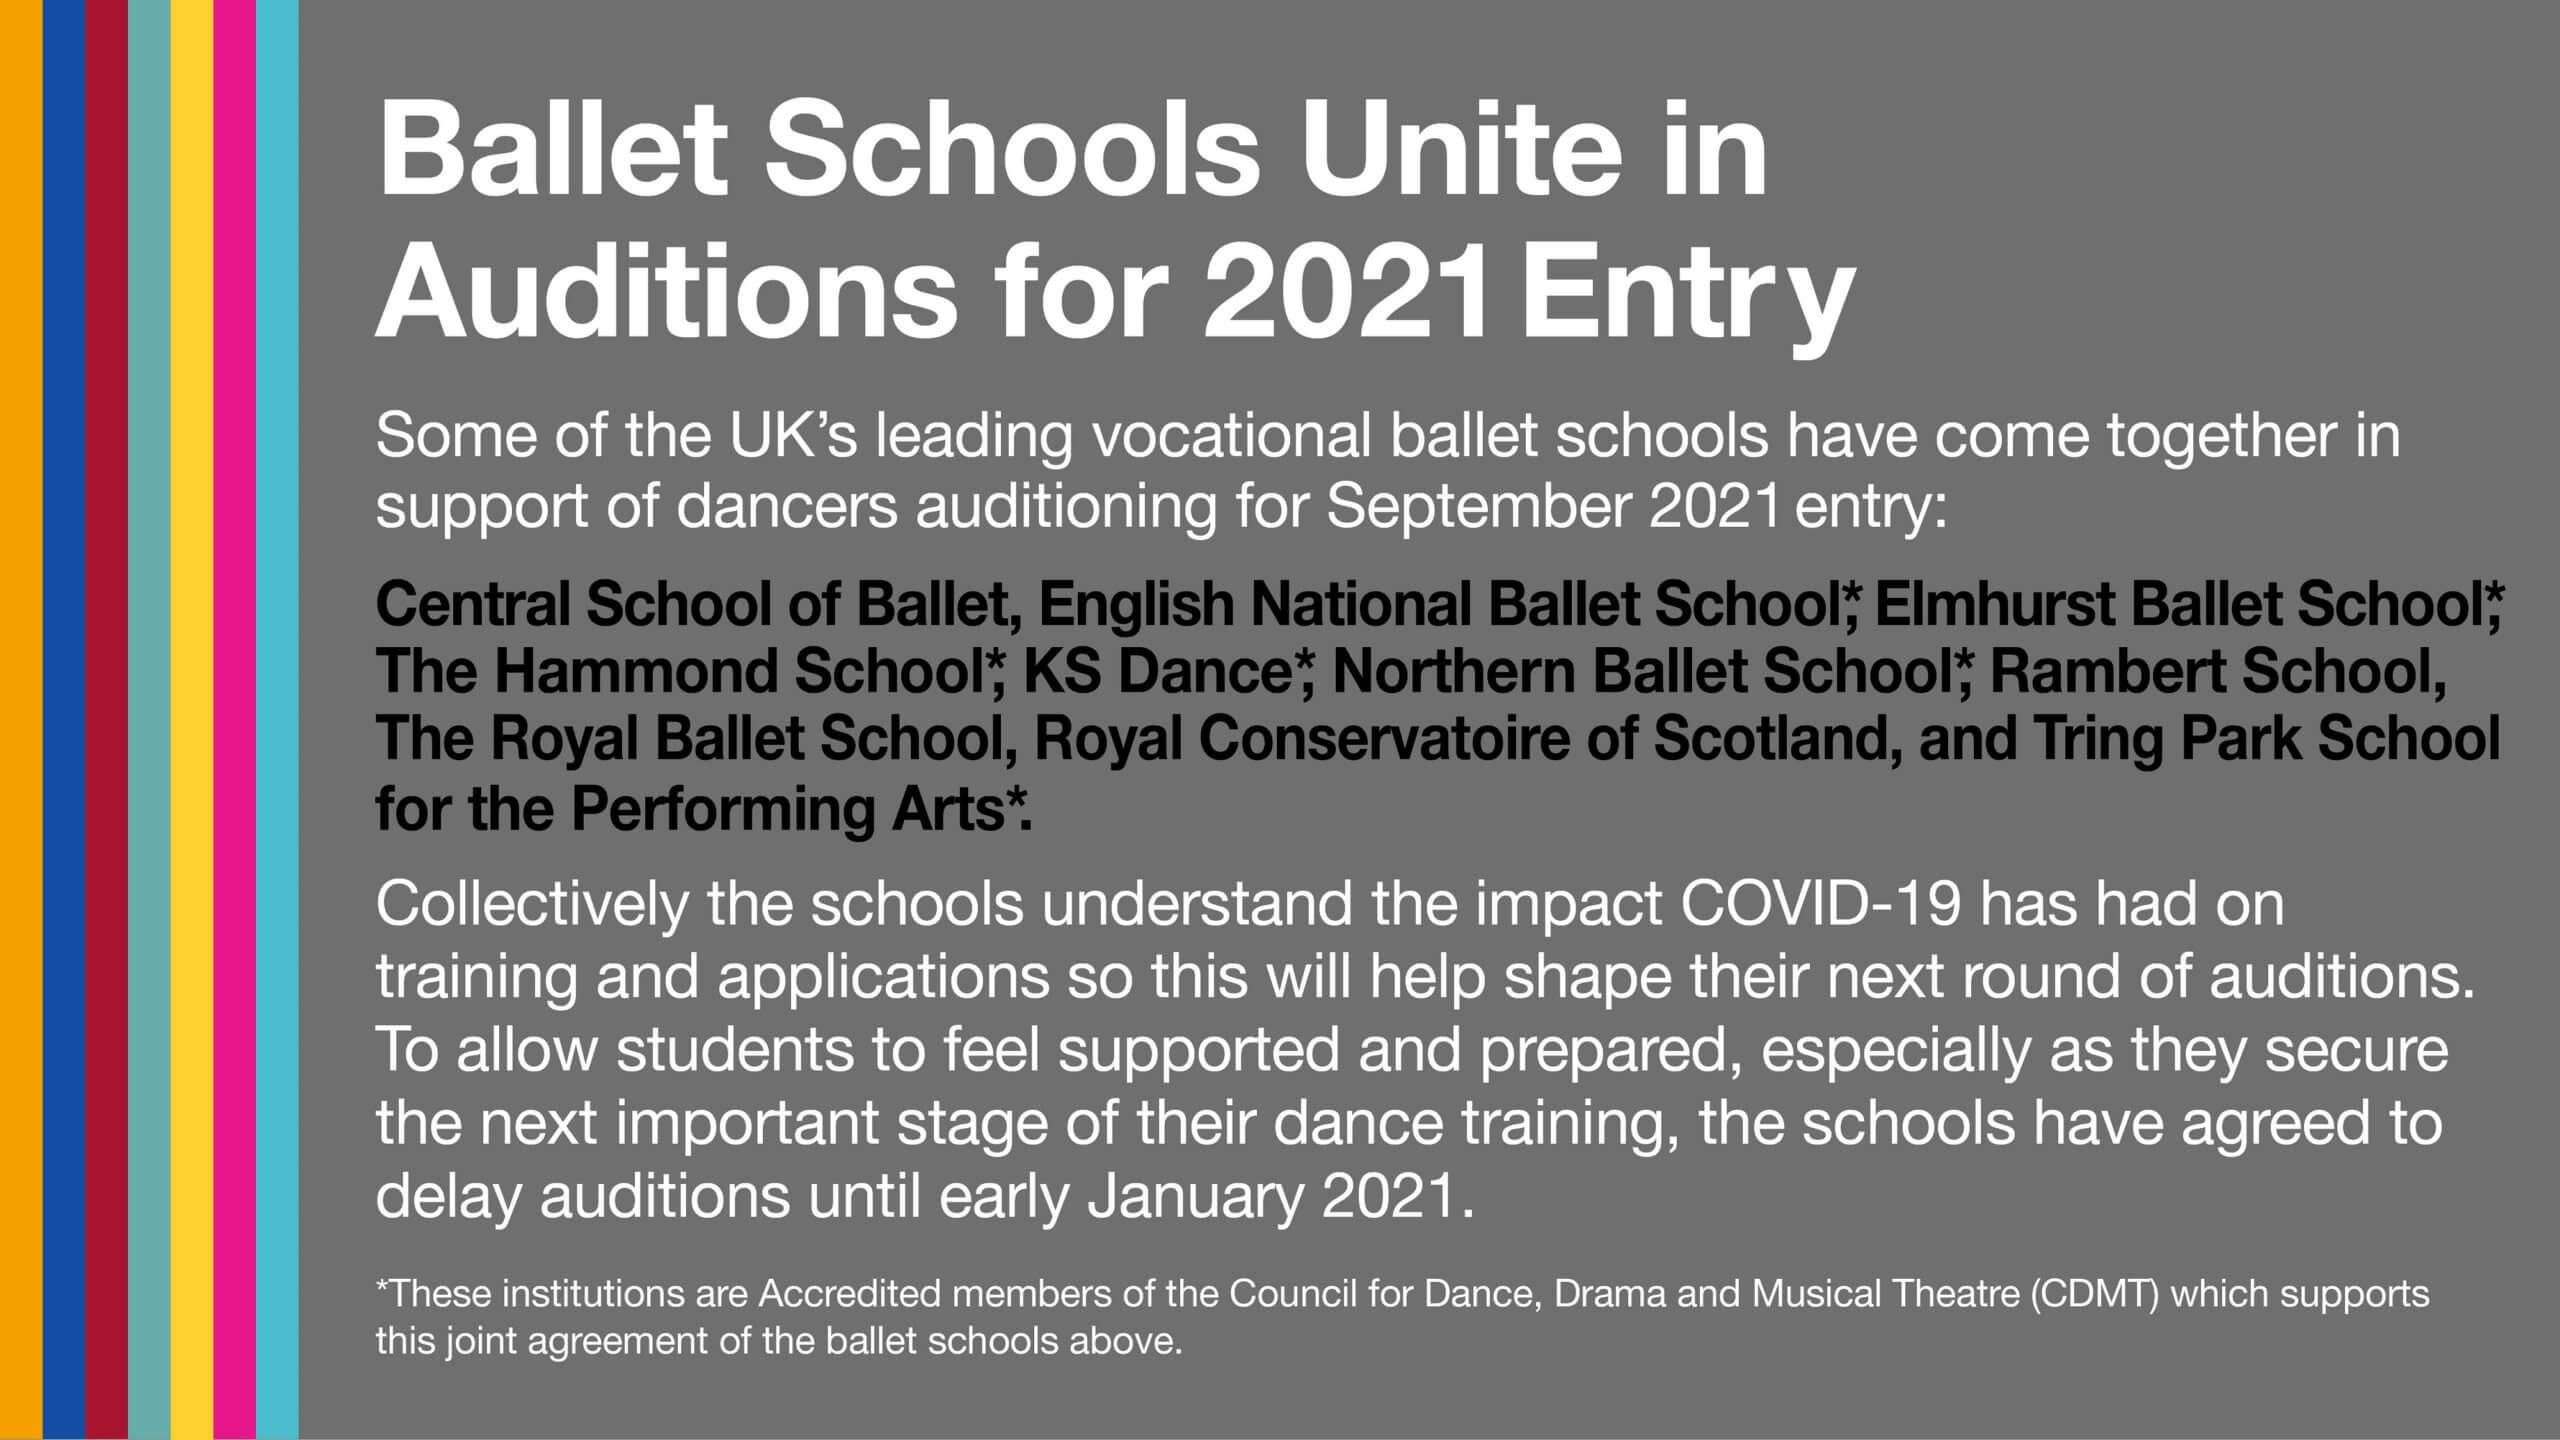 Graphic of ballet schools statement about delay to auditions for September 2021 entry